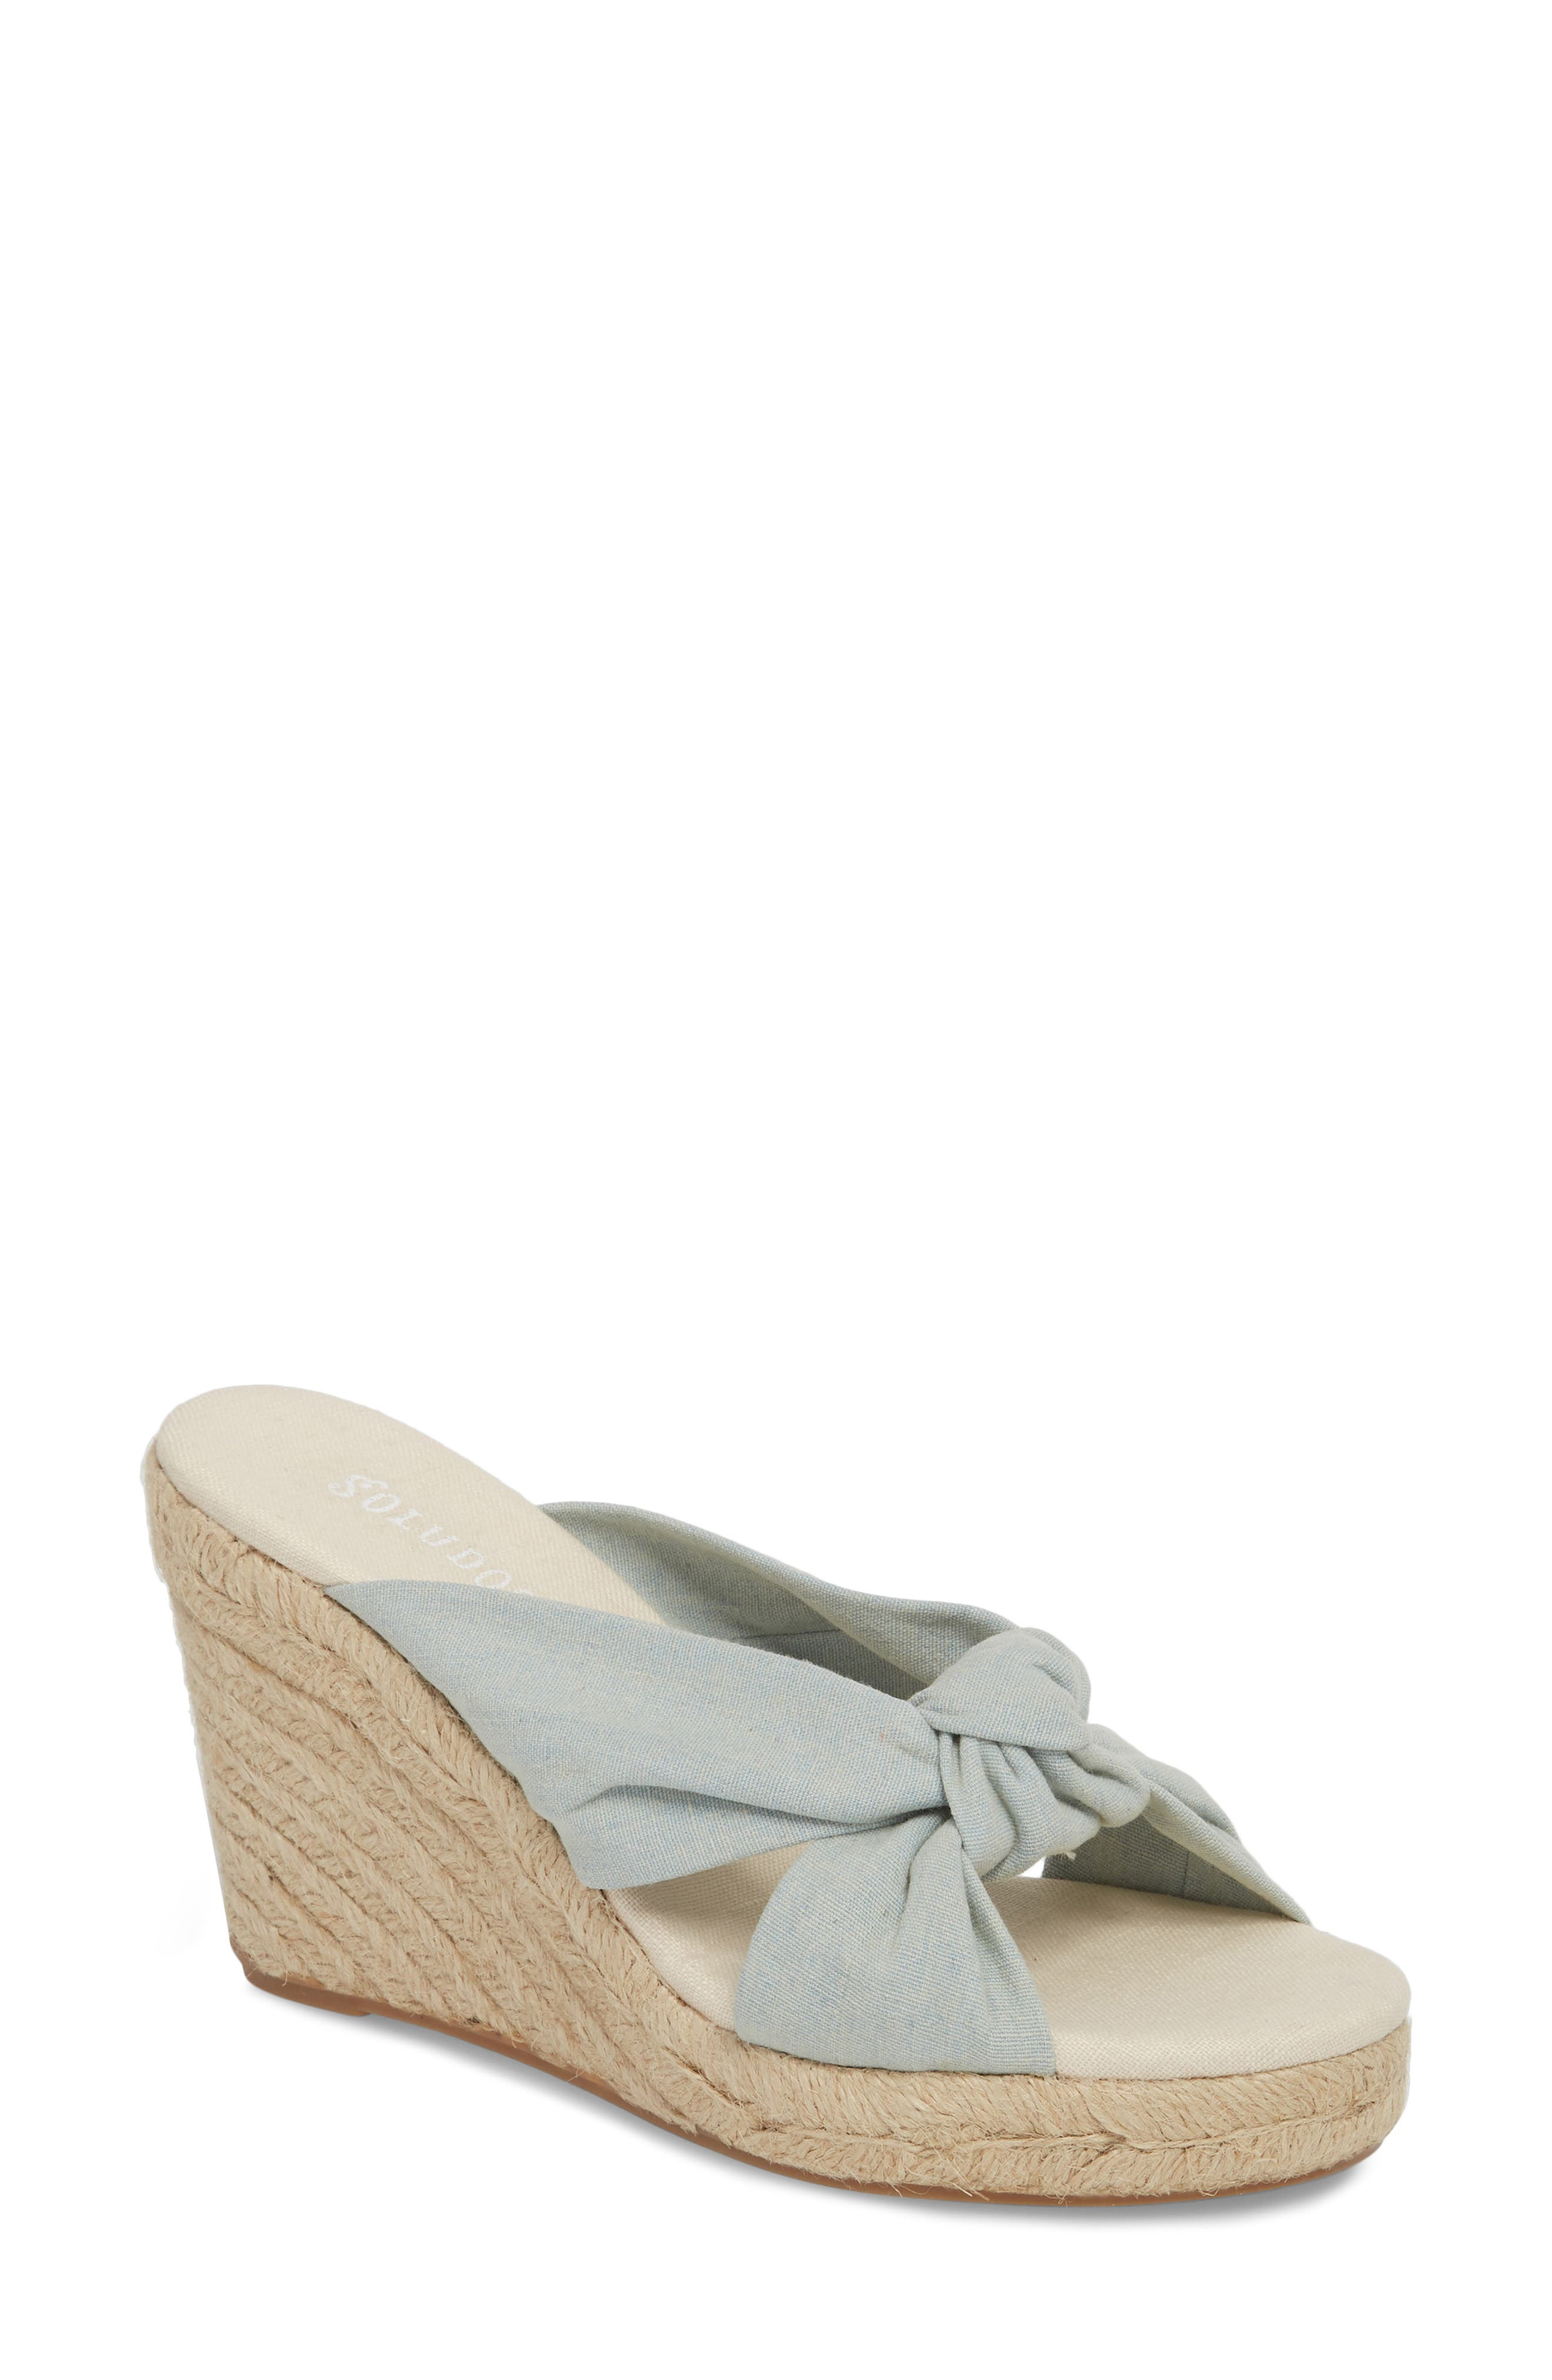 Knotted Espadrille Wedge Sandal,                             Main thumbnail 1, color,                             420